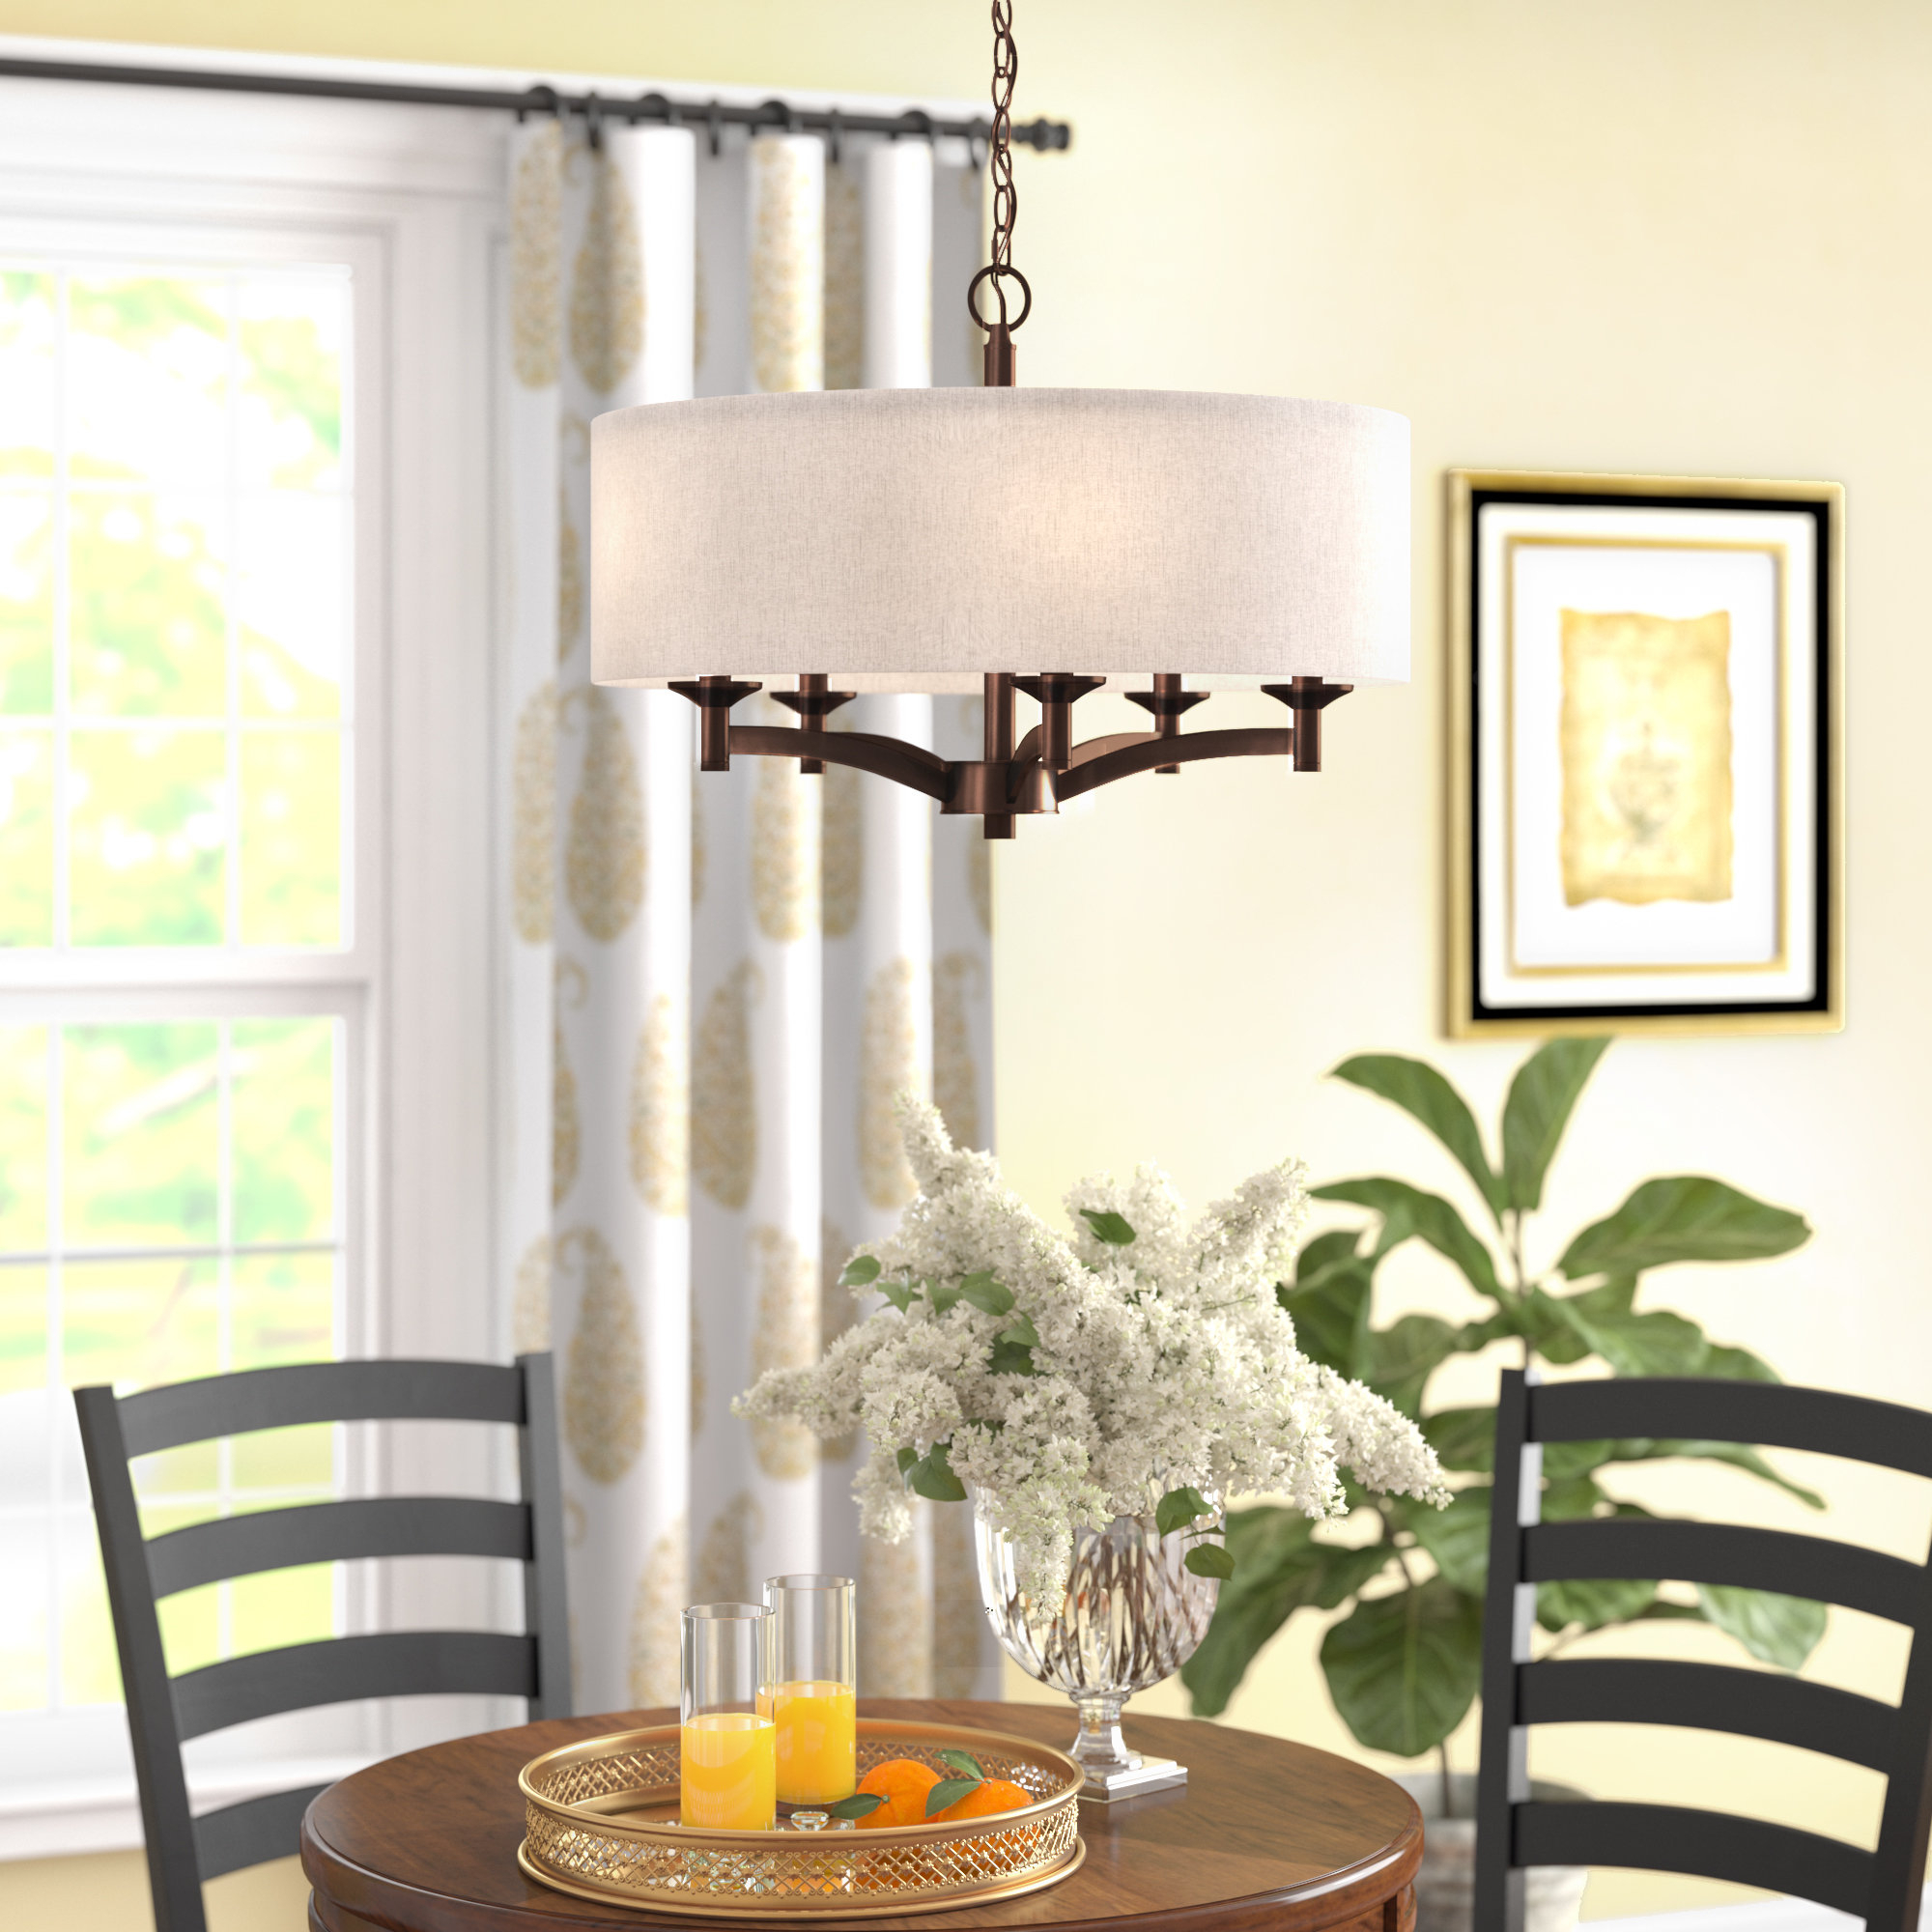 Most Recent Harlan 5 Light Drum Chandeliers Pertaining To Harlan 5 Light Drum Chandelier (View 3 of 25)